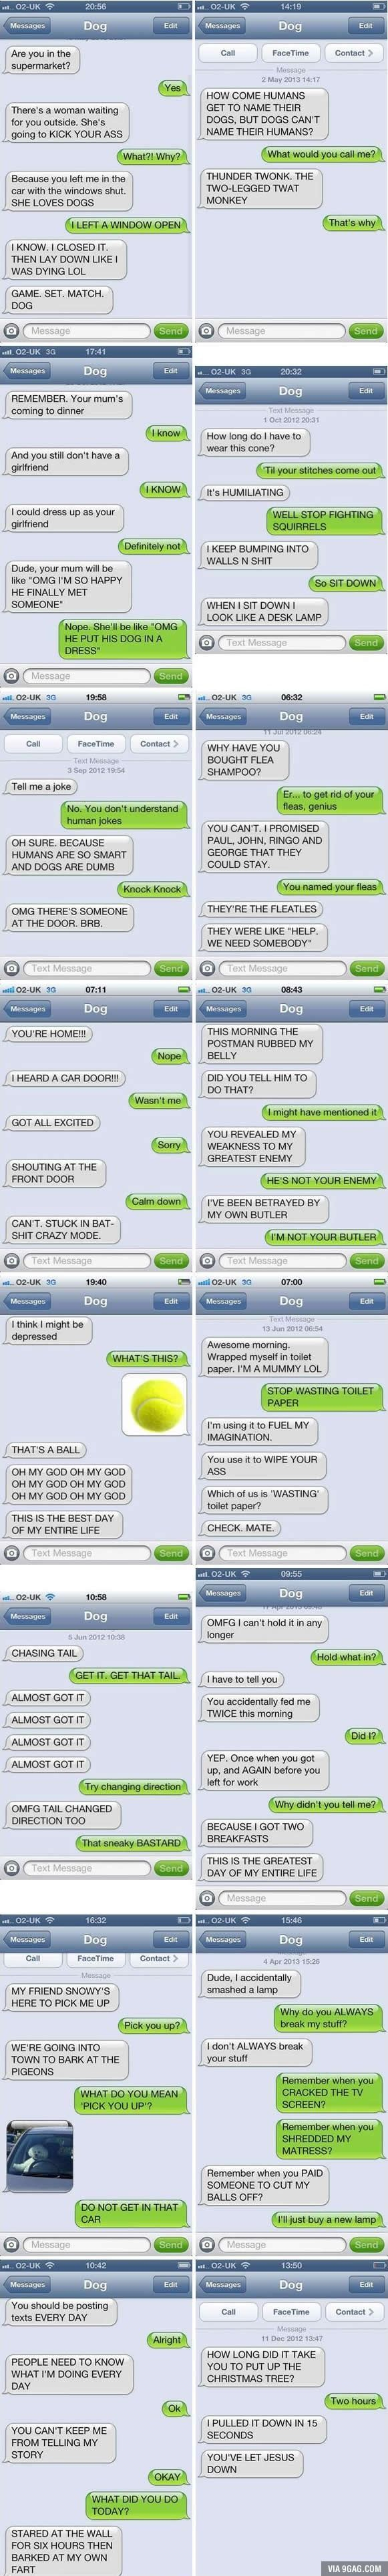 If Your Dog Knew How To Text, These Would Be Your Conversations. - 9GAG